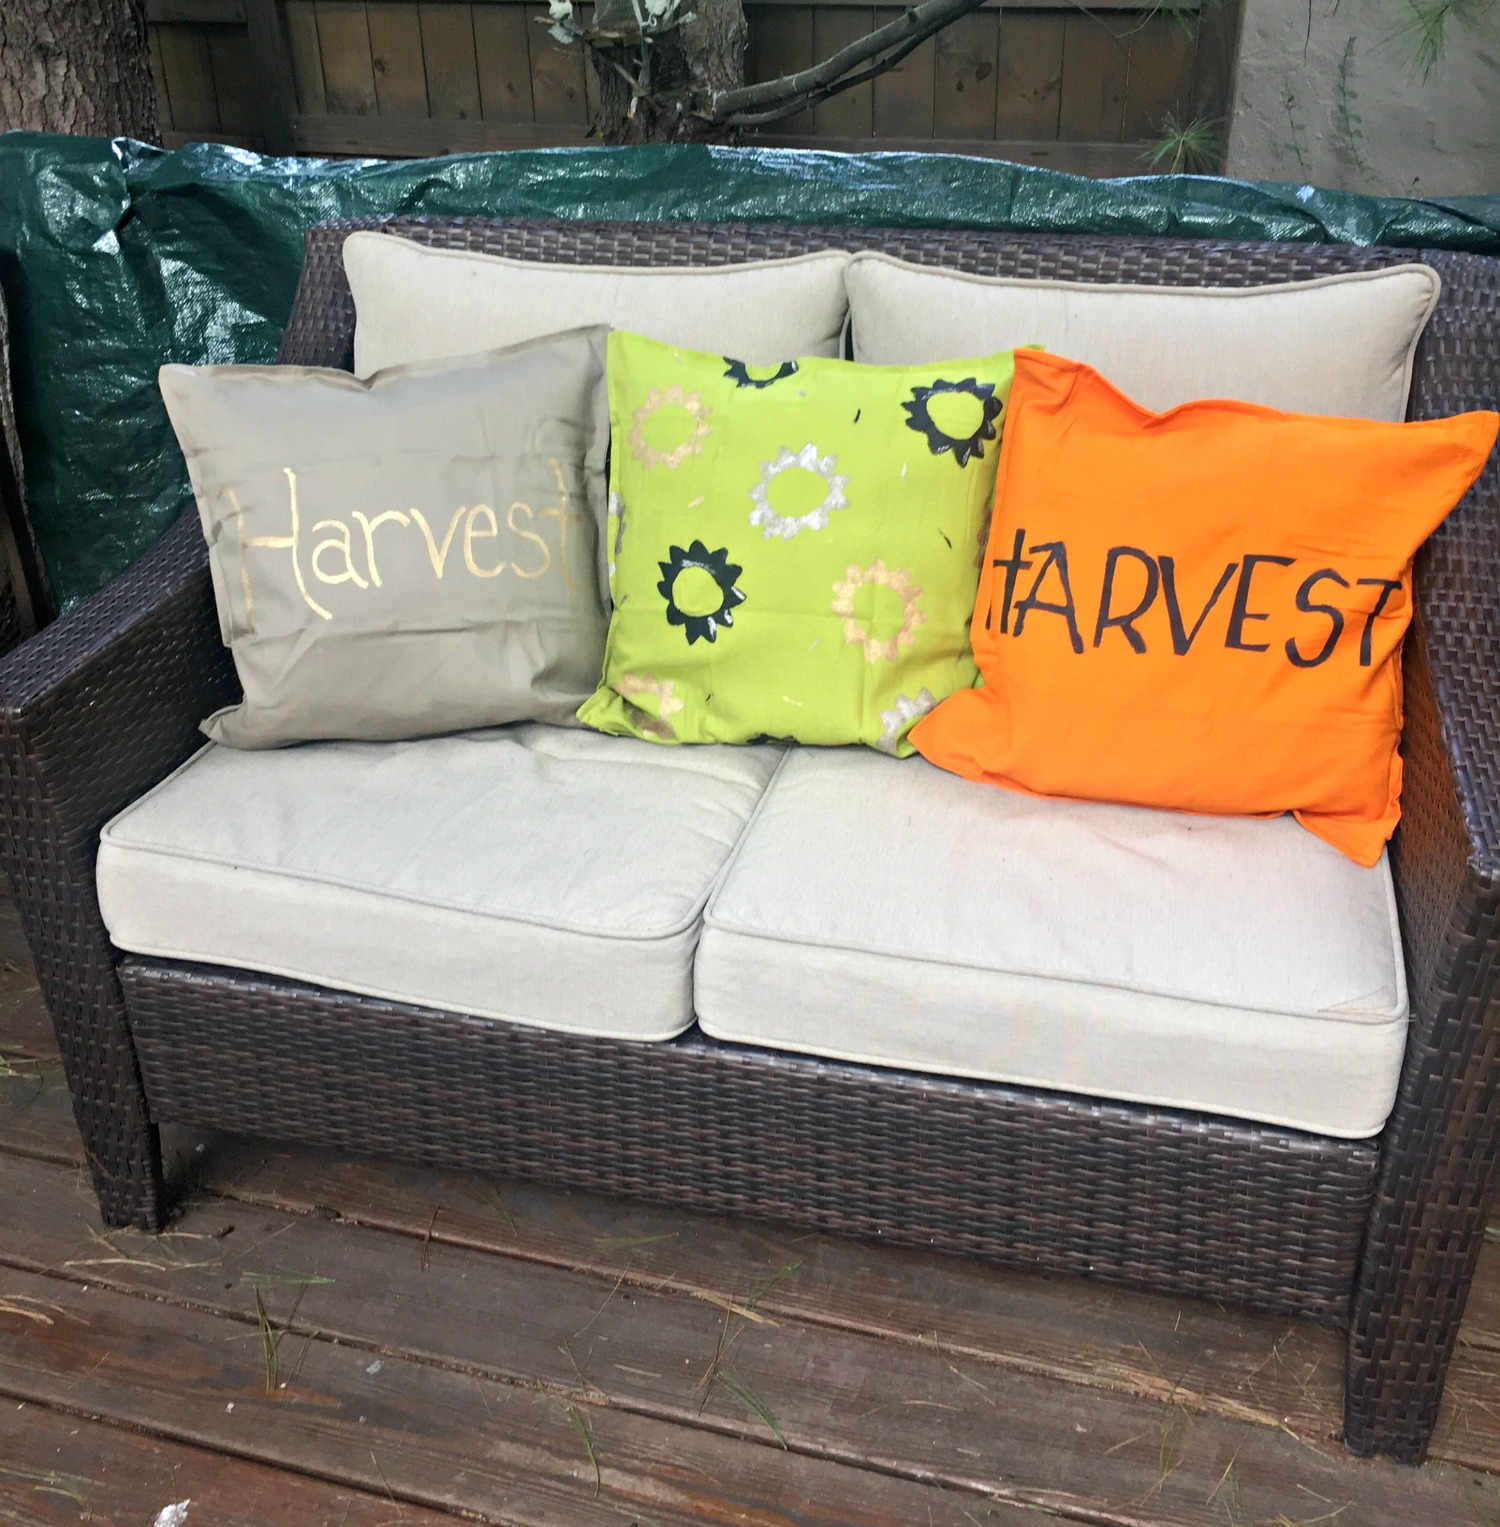 Diy Stenciled Fall Pillows The Food Hussy